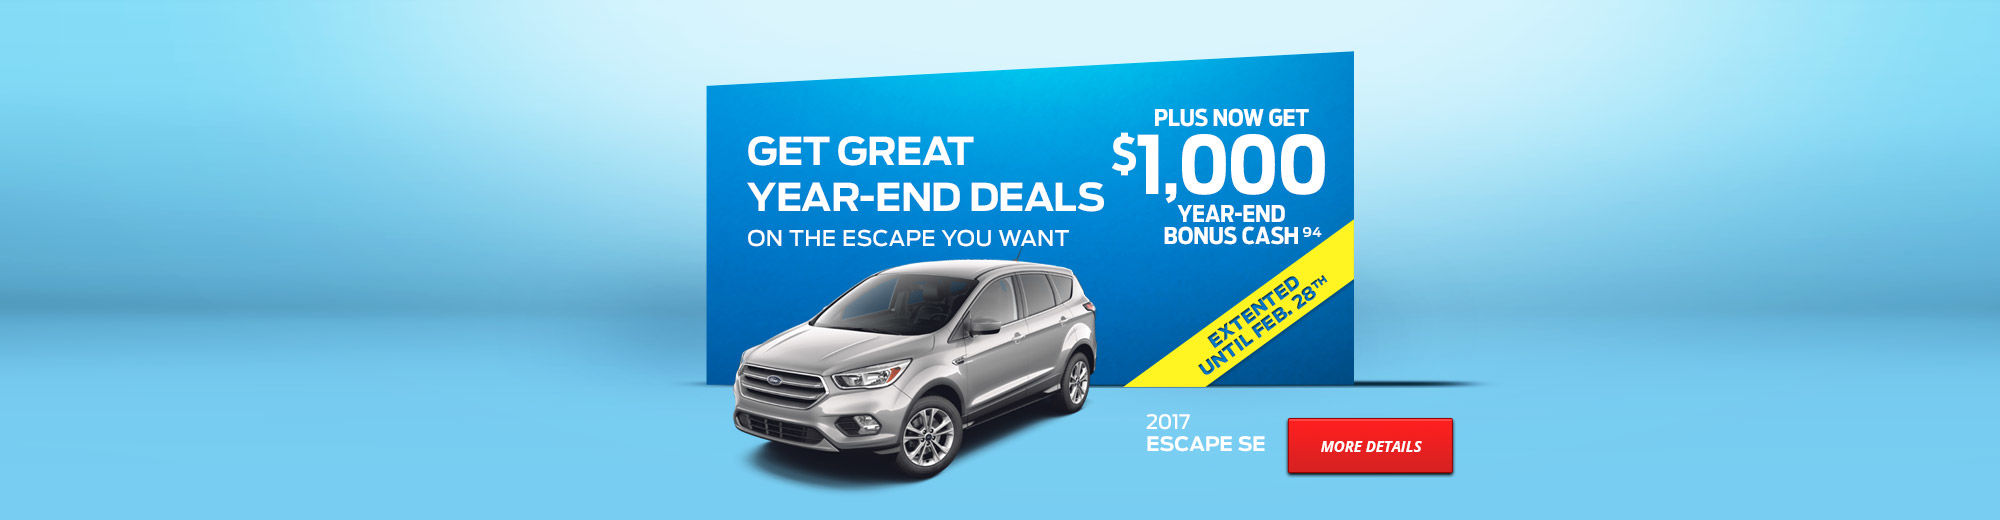 GET GREAT YEAR-END DEALS